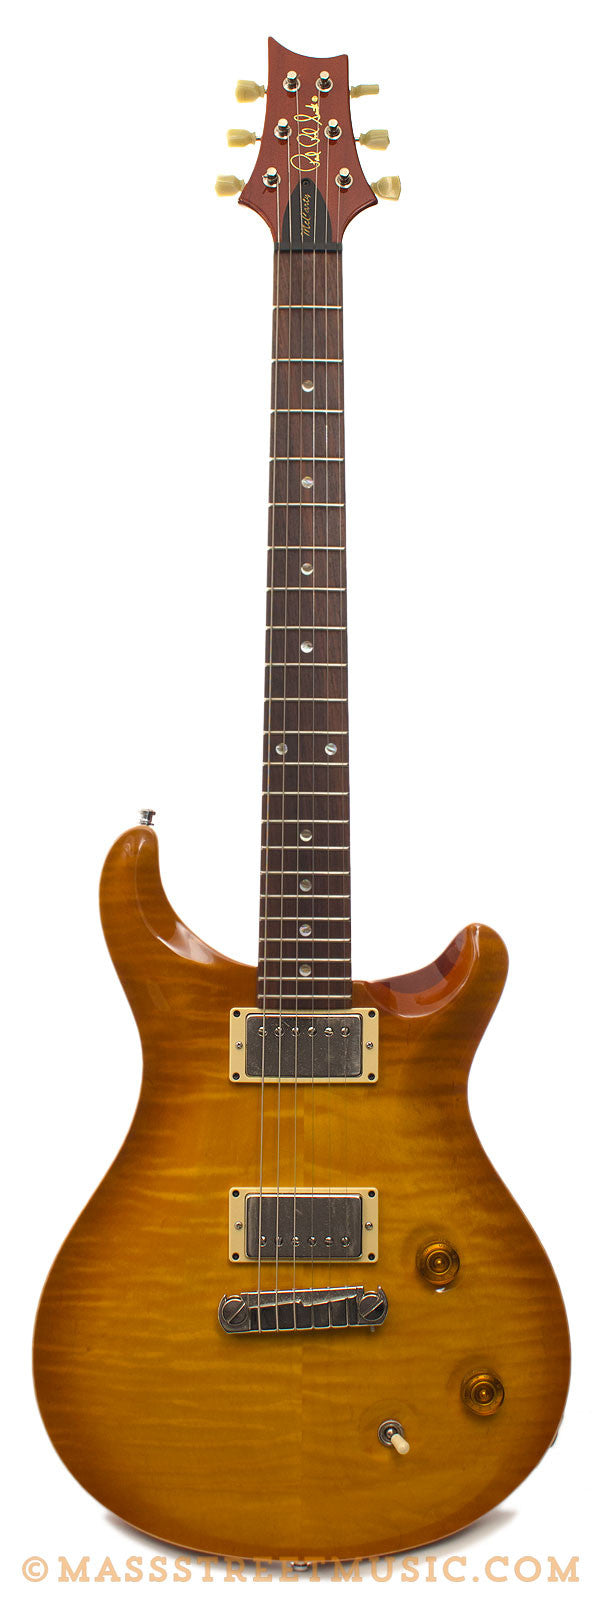 paul reed smith prs mccarty 2006 used electric guitar mass